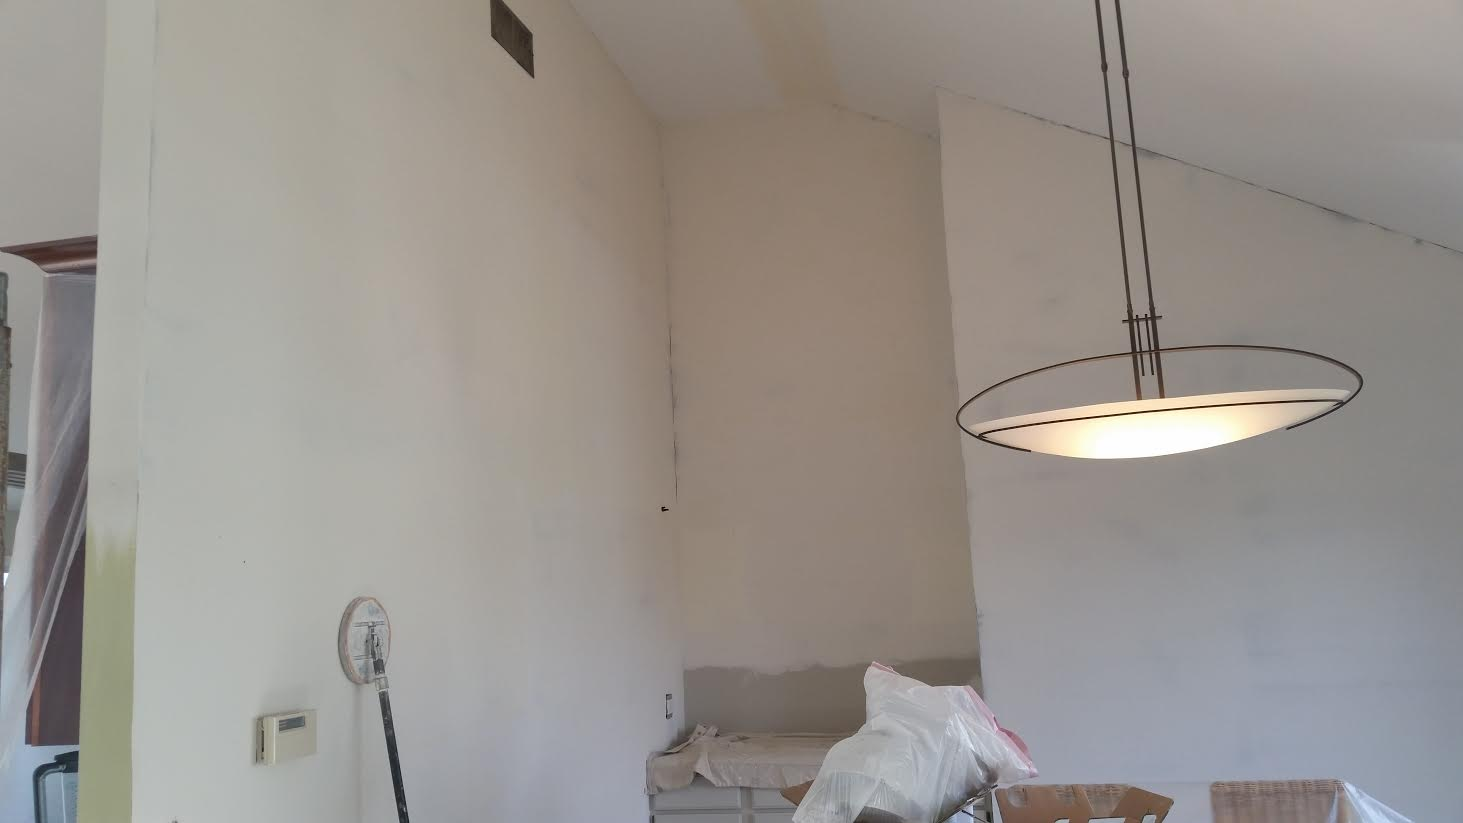 Wall Repair Naperville Drywall Repair Painting